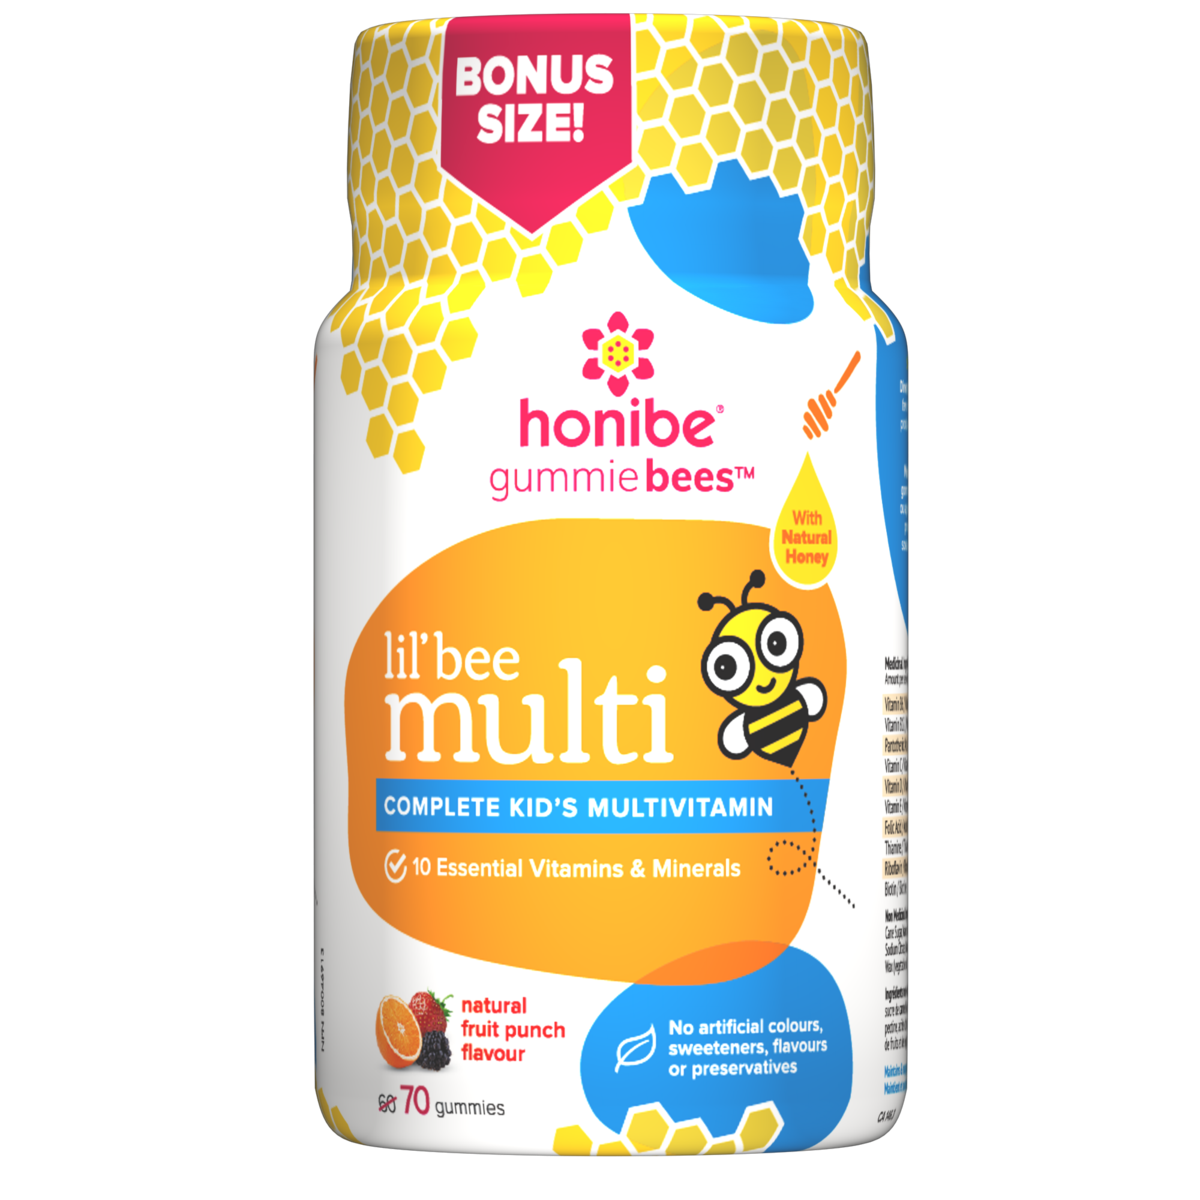 Honibe lil' bee Multivitamin Complete